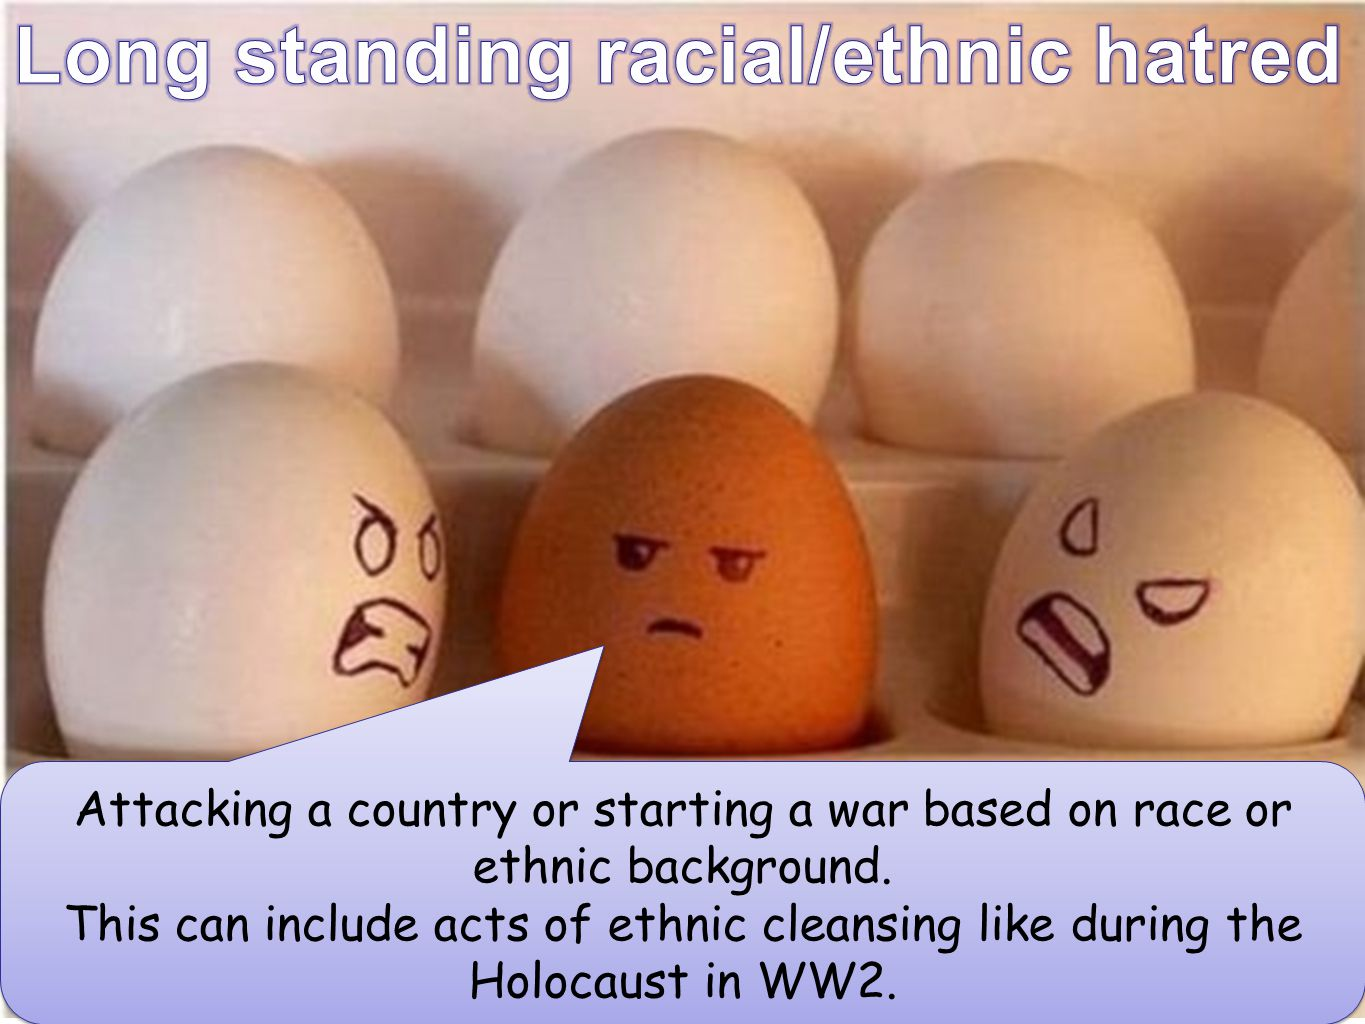 Long standing racial/ethnic hatred